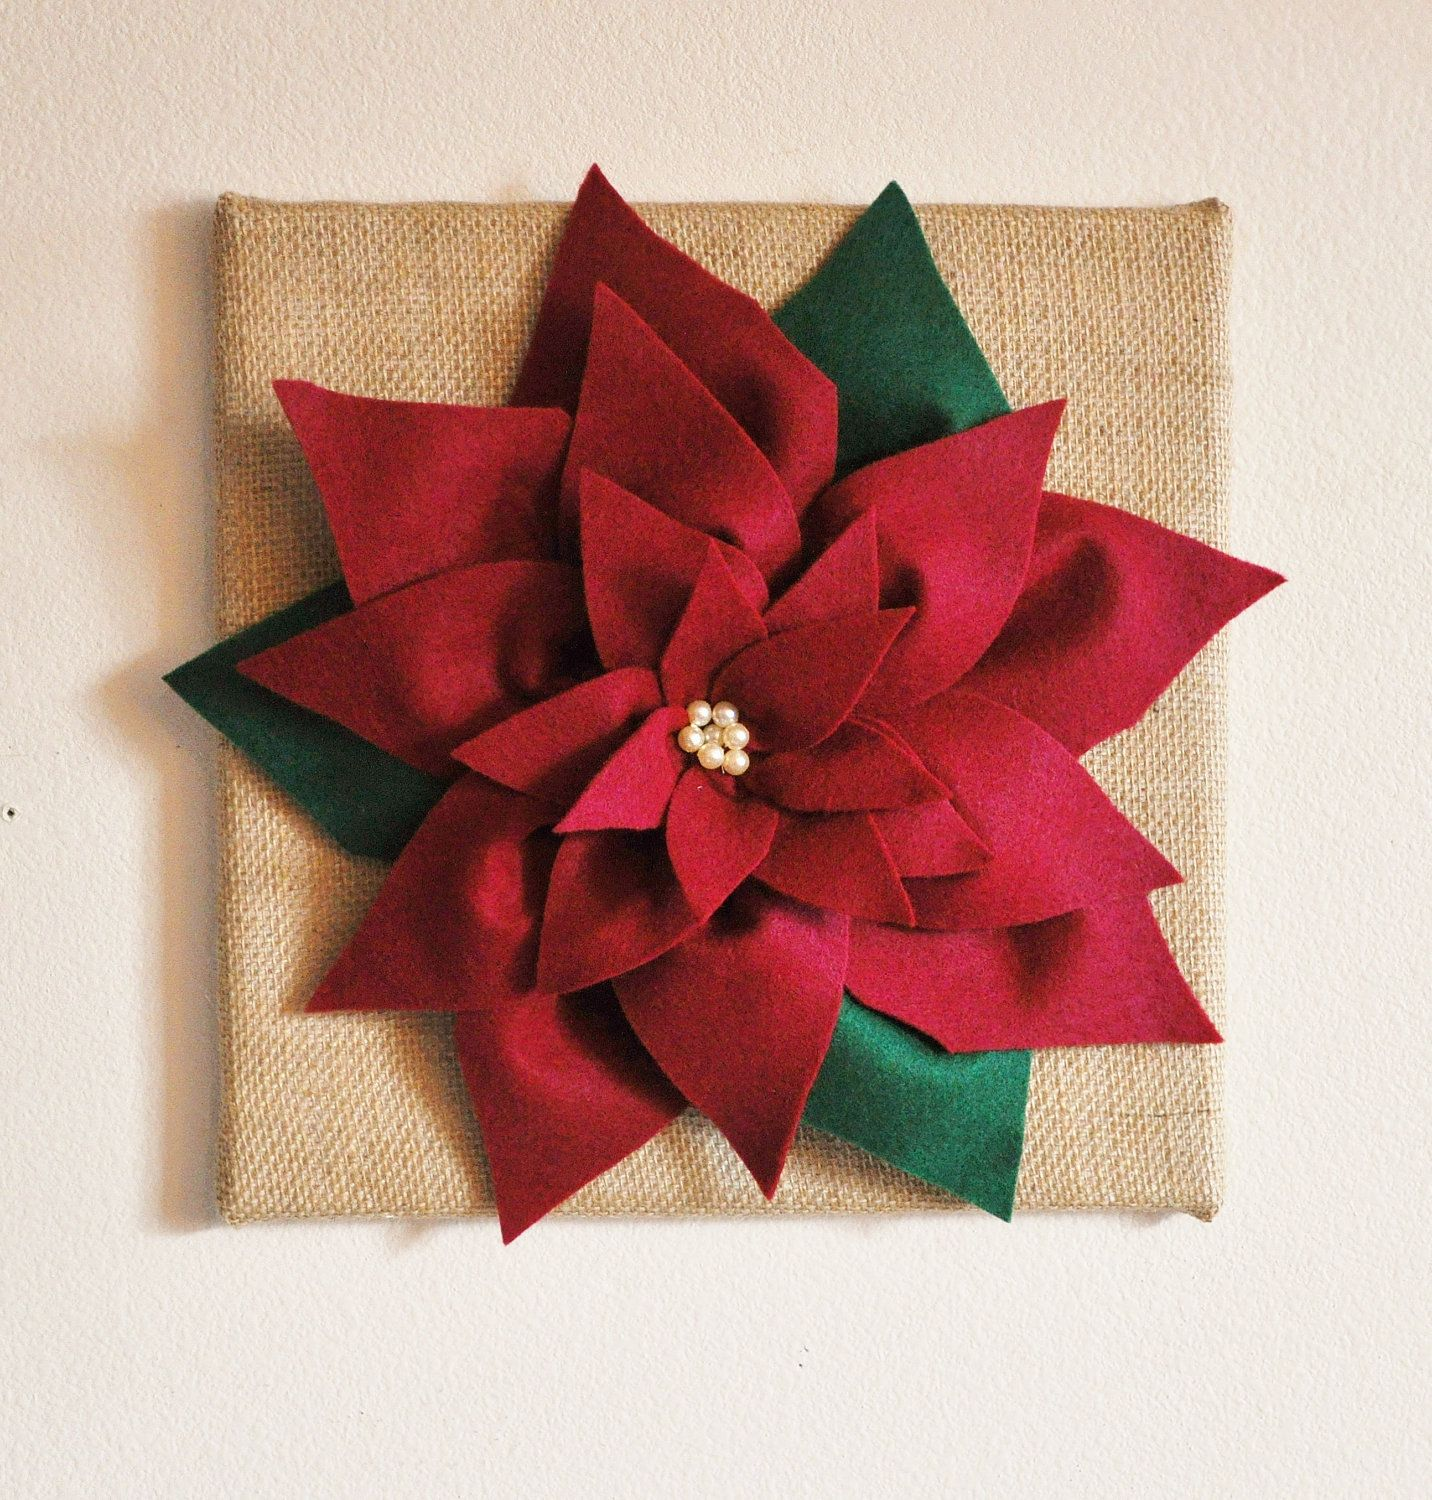 Rustic Christmas Wall Decor - Cranberry Poinsettia on 12 x12 ...